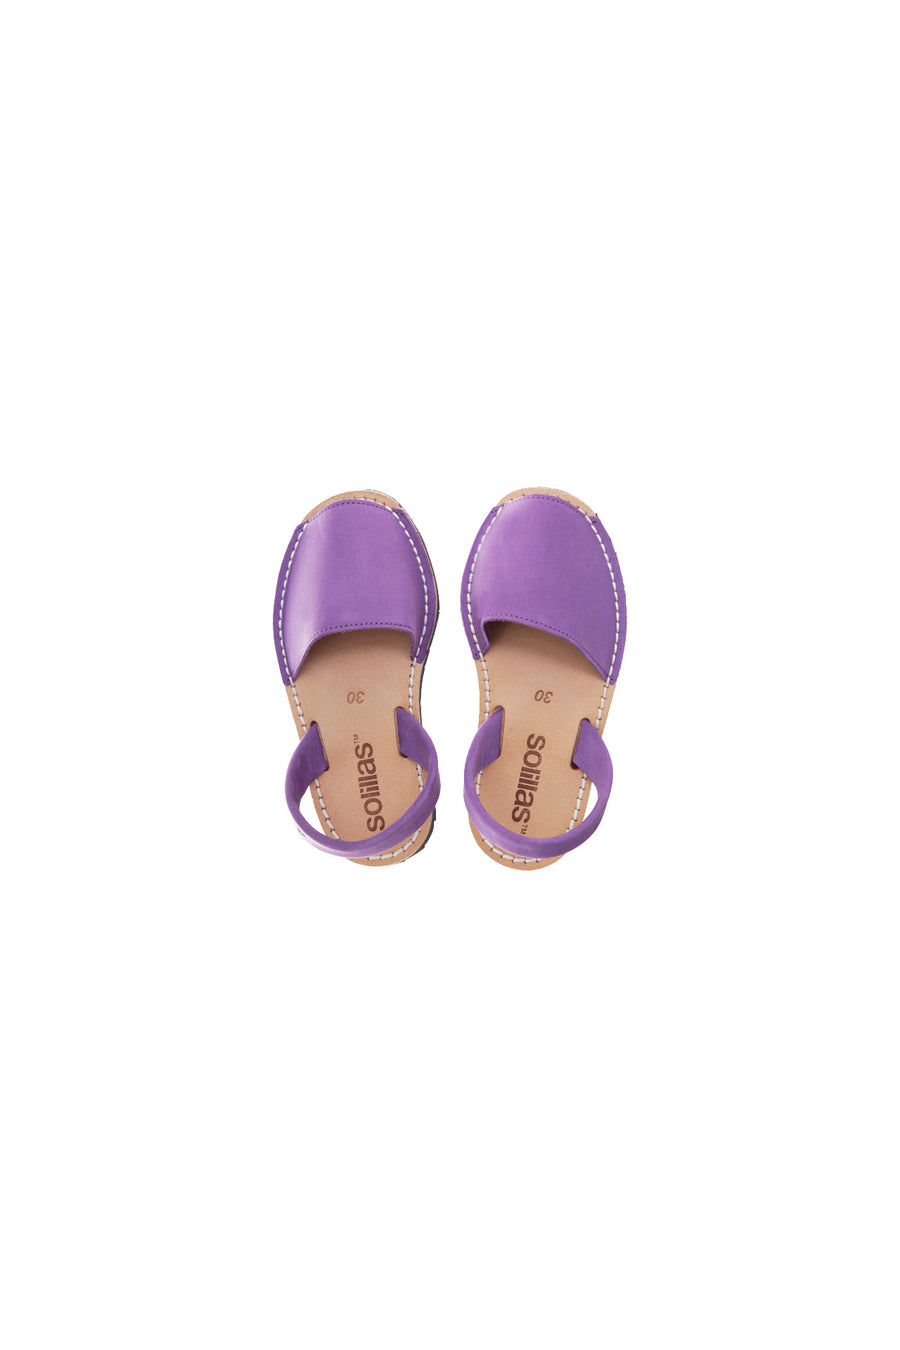 Princesa - Leather Menorcan Sandals